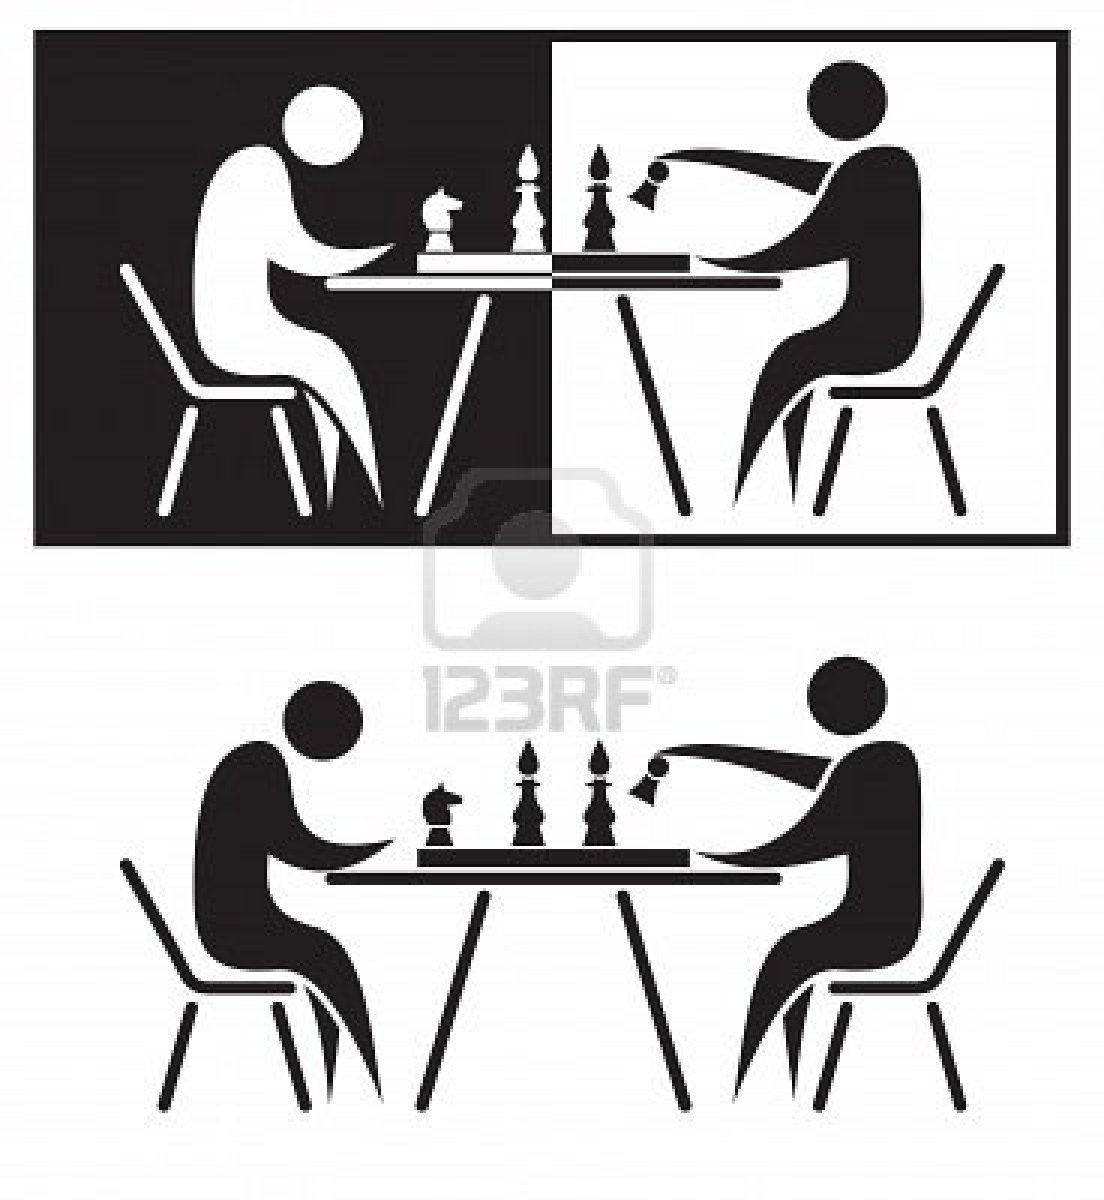 Chess Players Black And White Illustration